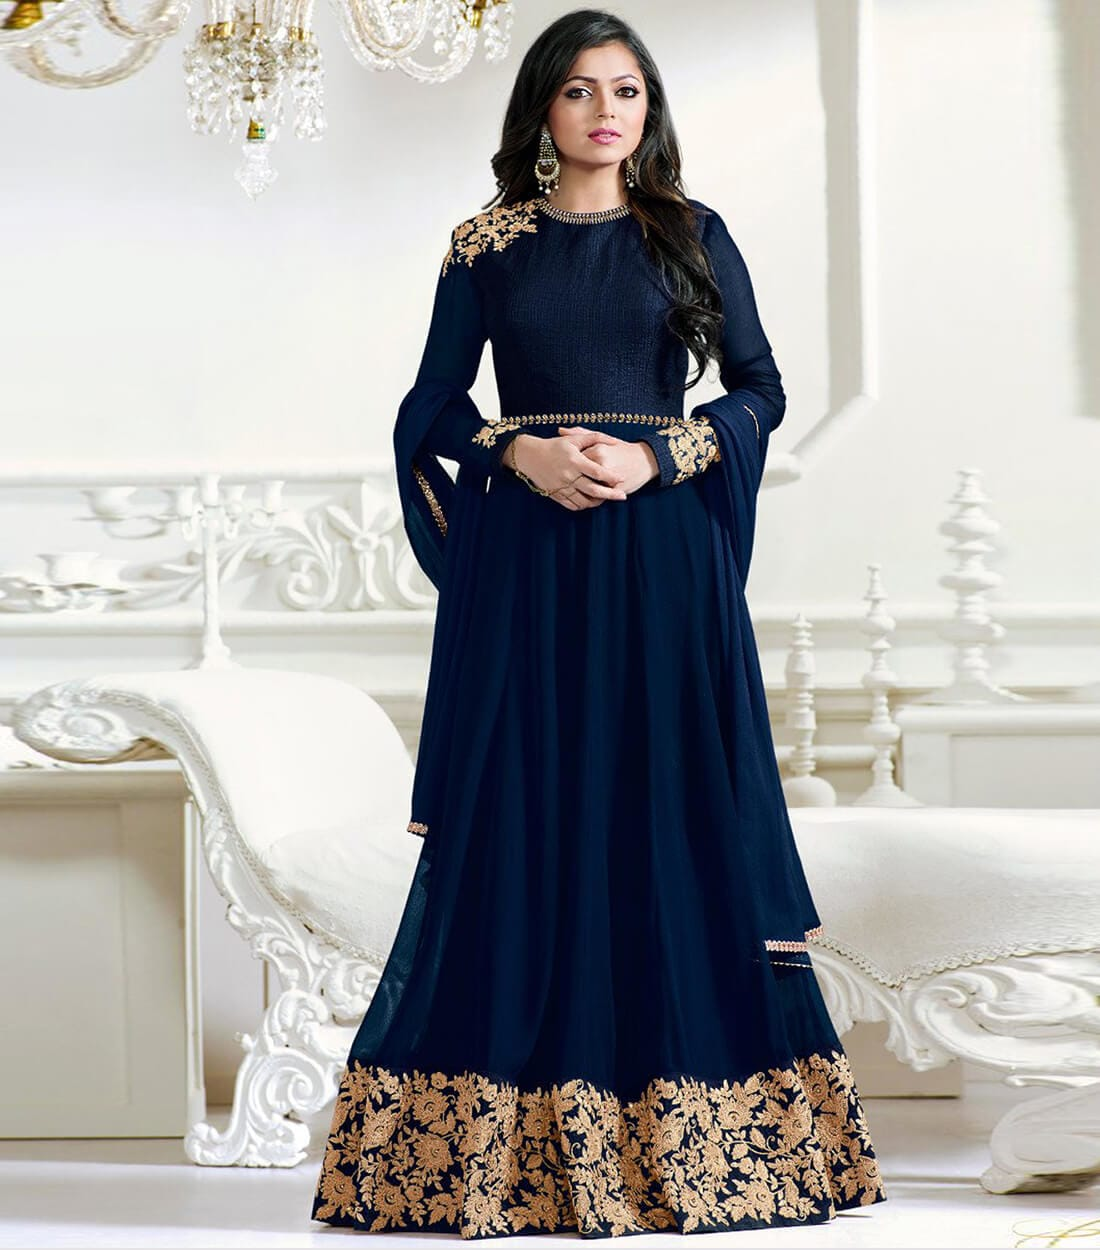 Product price :-1249 https://www.zeelshops.com/shop.php?pid=461&pname=Blue-Georgette-Embroidered-Semi-Stitched-Salwar-Suit Contact as to 9924430008 or whatsapp for more details   @geetfashion  #saree #dress #dress #dresslikeagirl #Bollywood #bollywoodactress #new-style #newdress #girls #girlswear